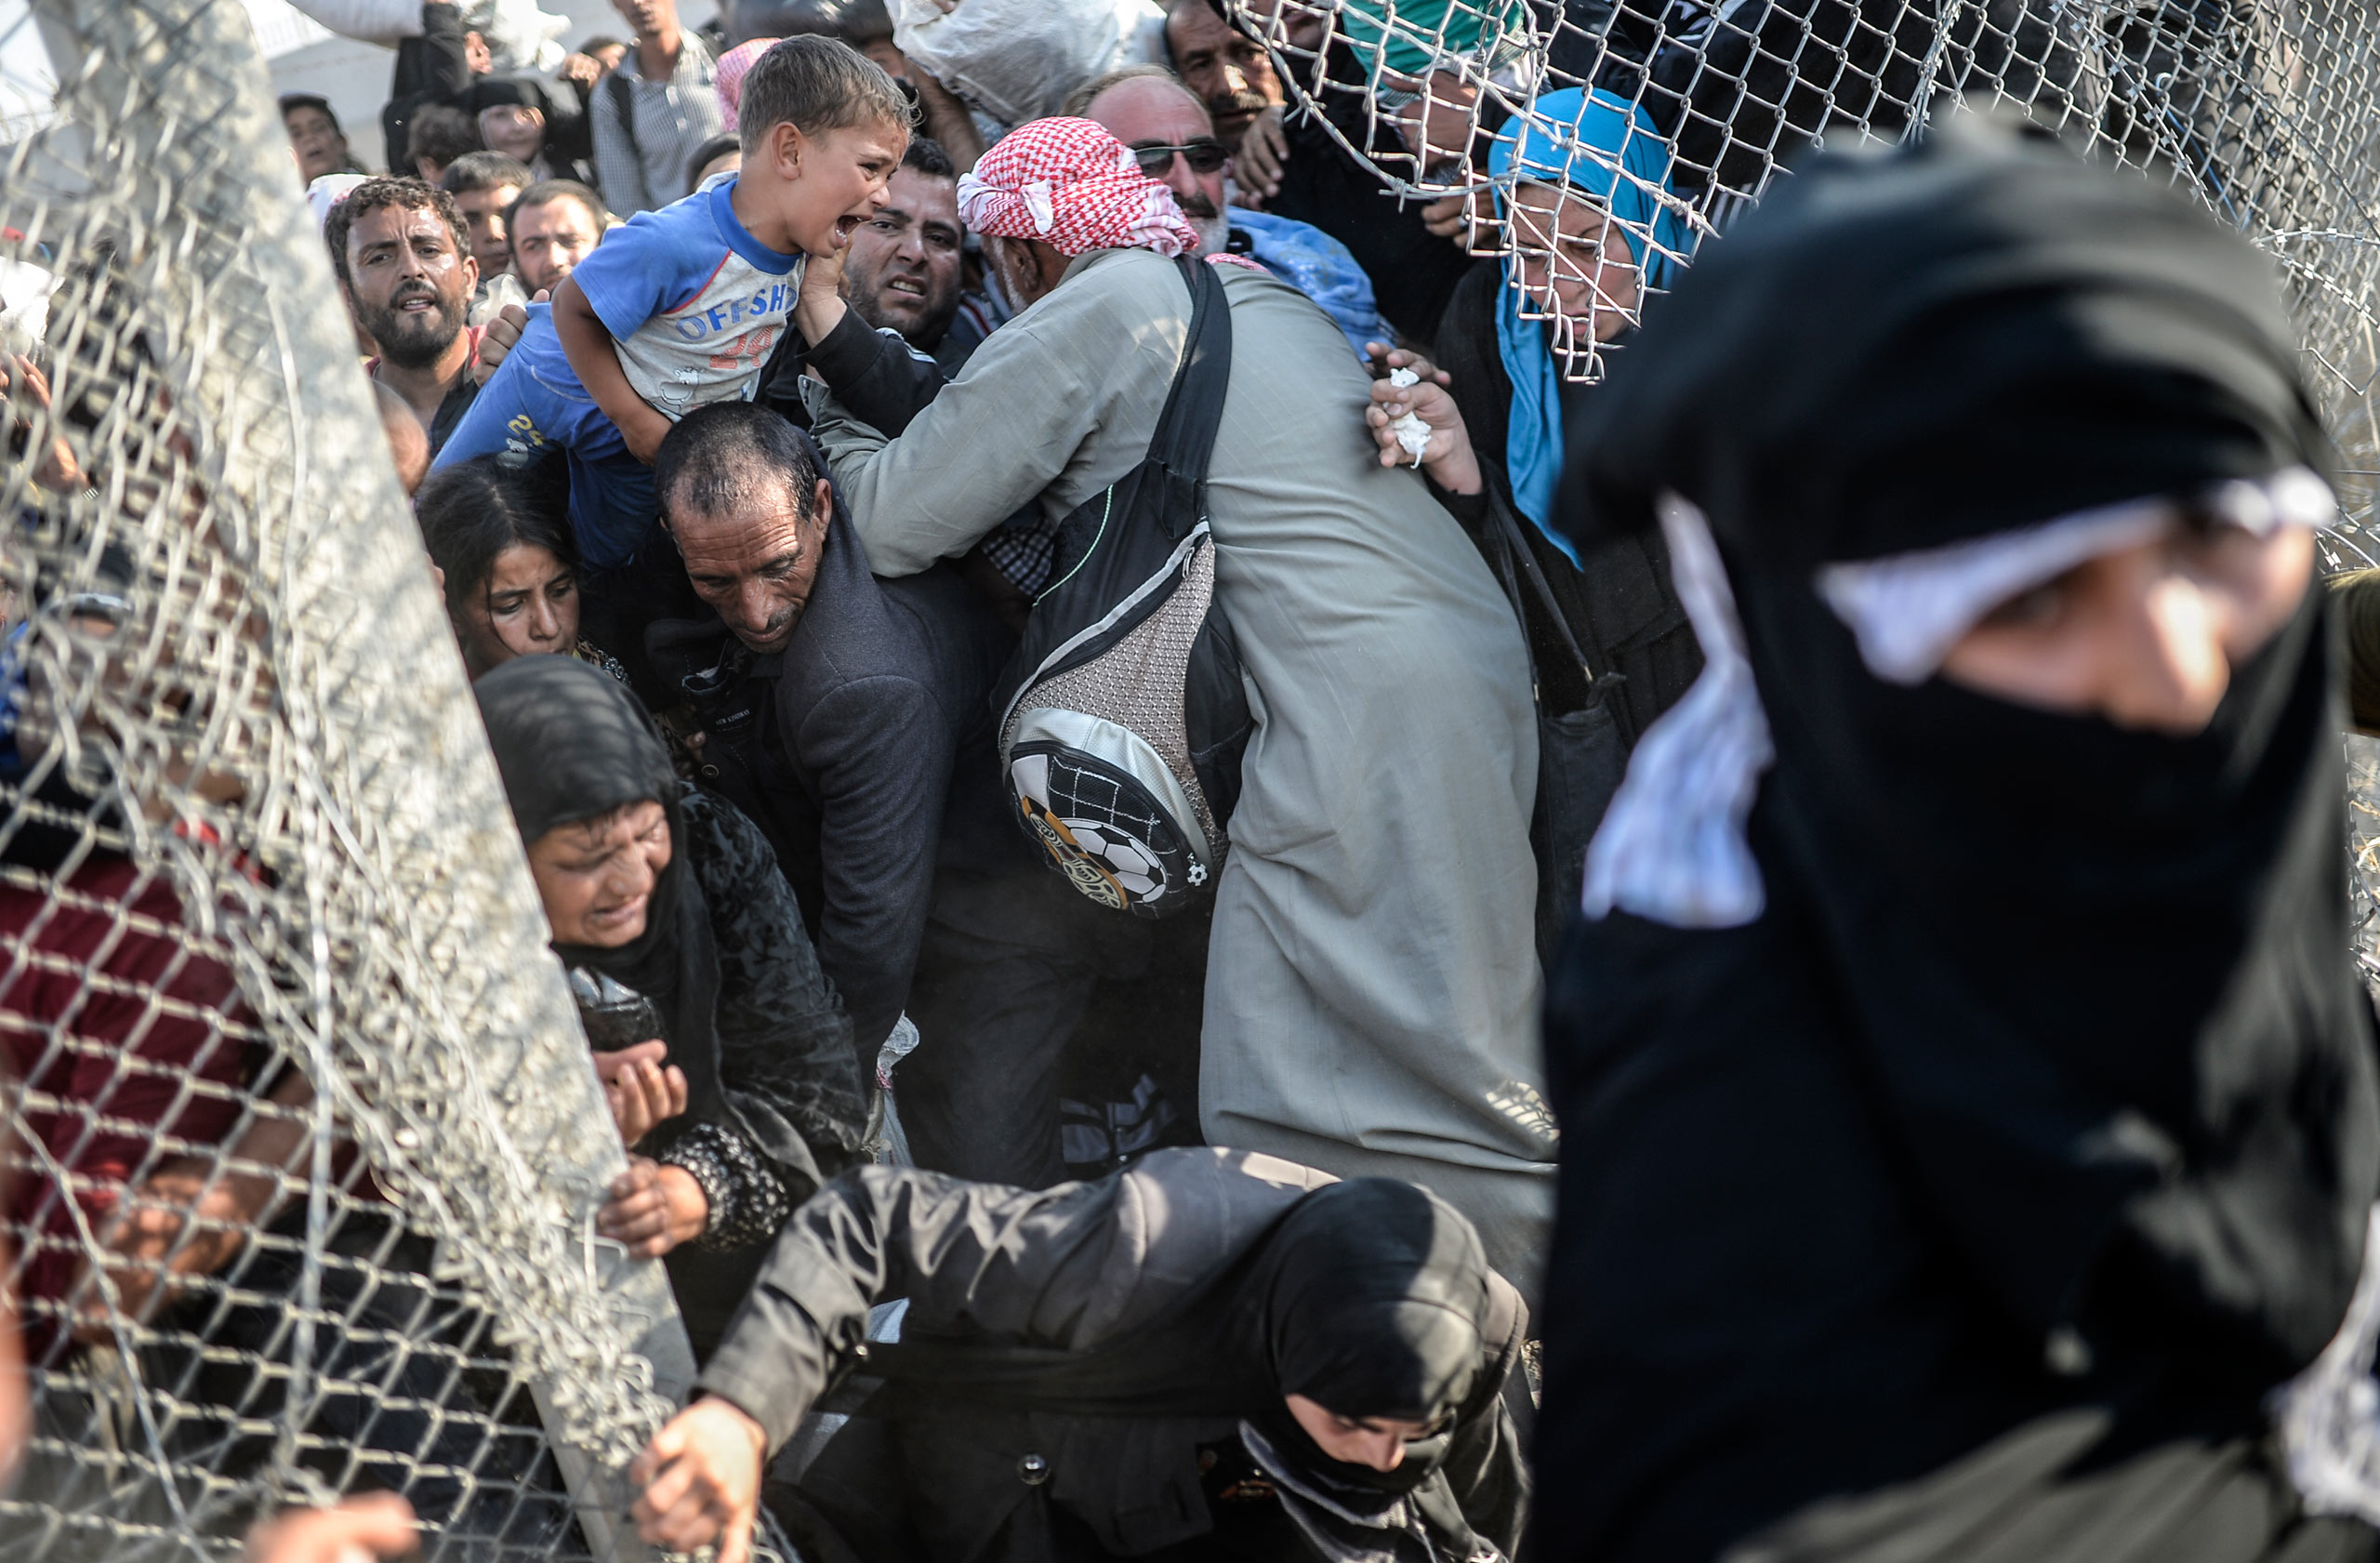 Thousands of Syrians break through the wired ripped fences, crossing from the Syrian town of Tell Abyad into Akçakale, in the Şanlıurfa province. June 14, 2015.